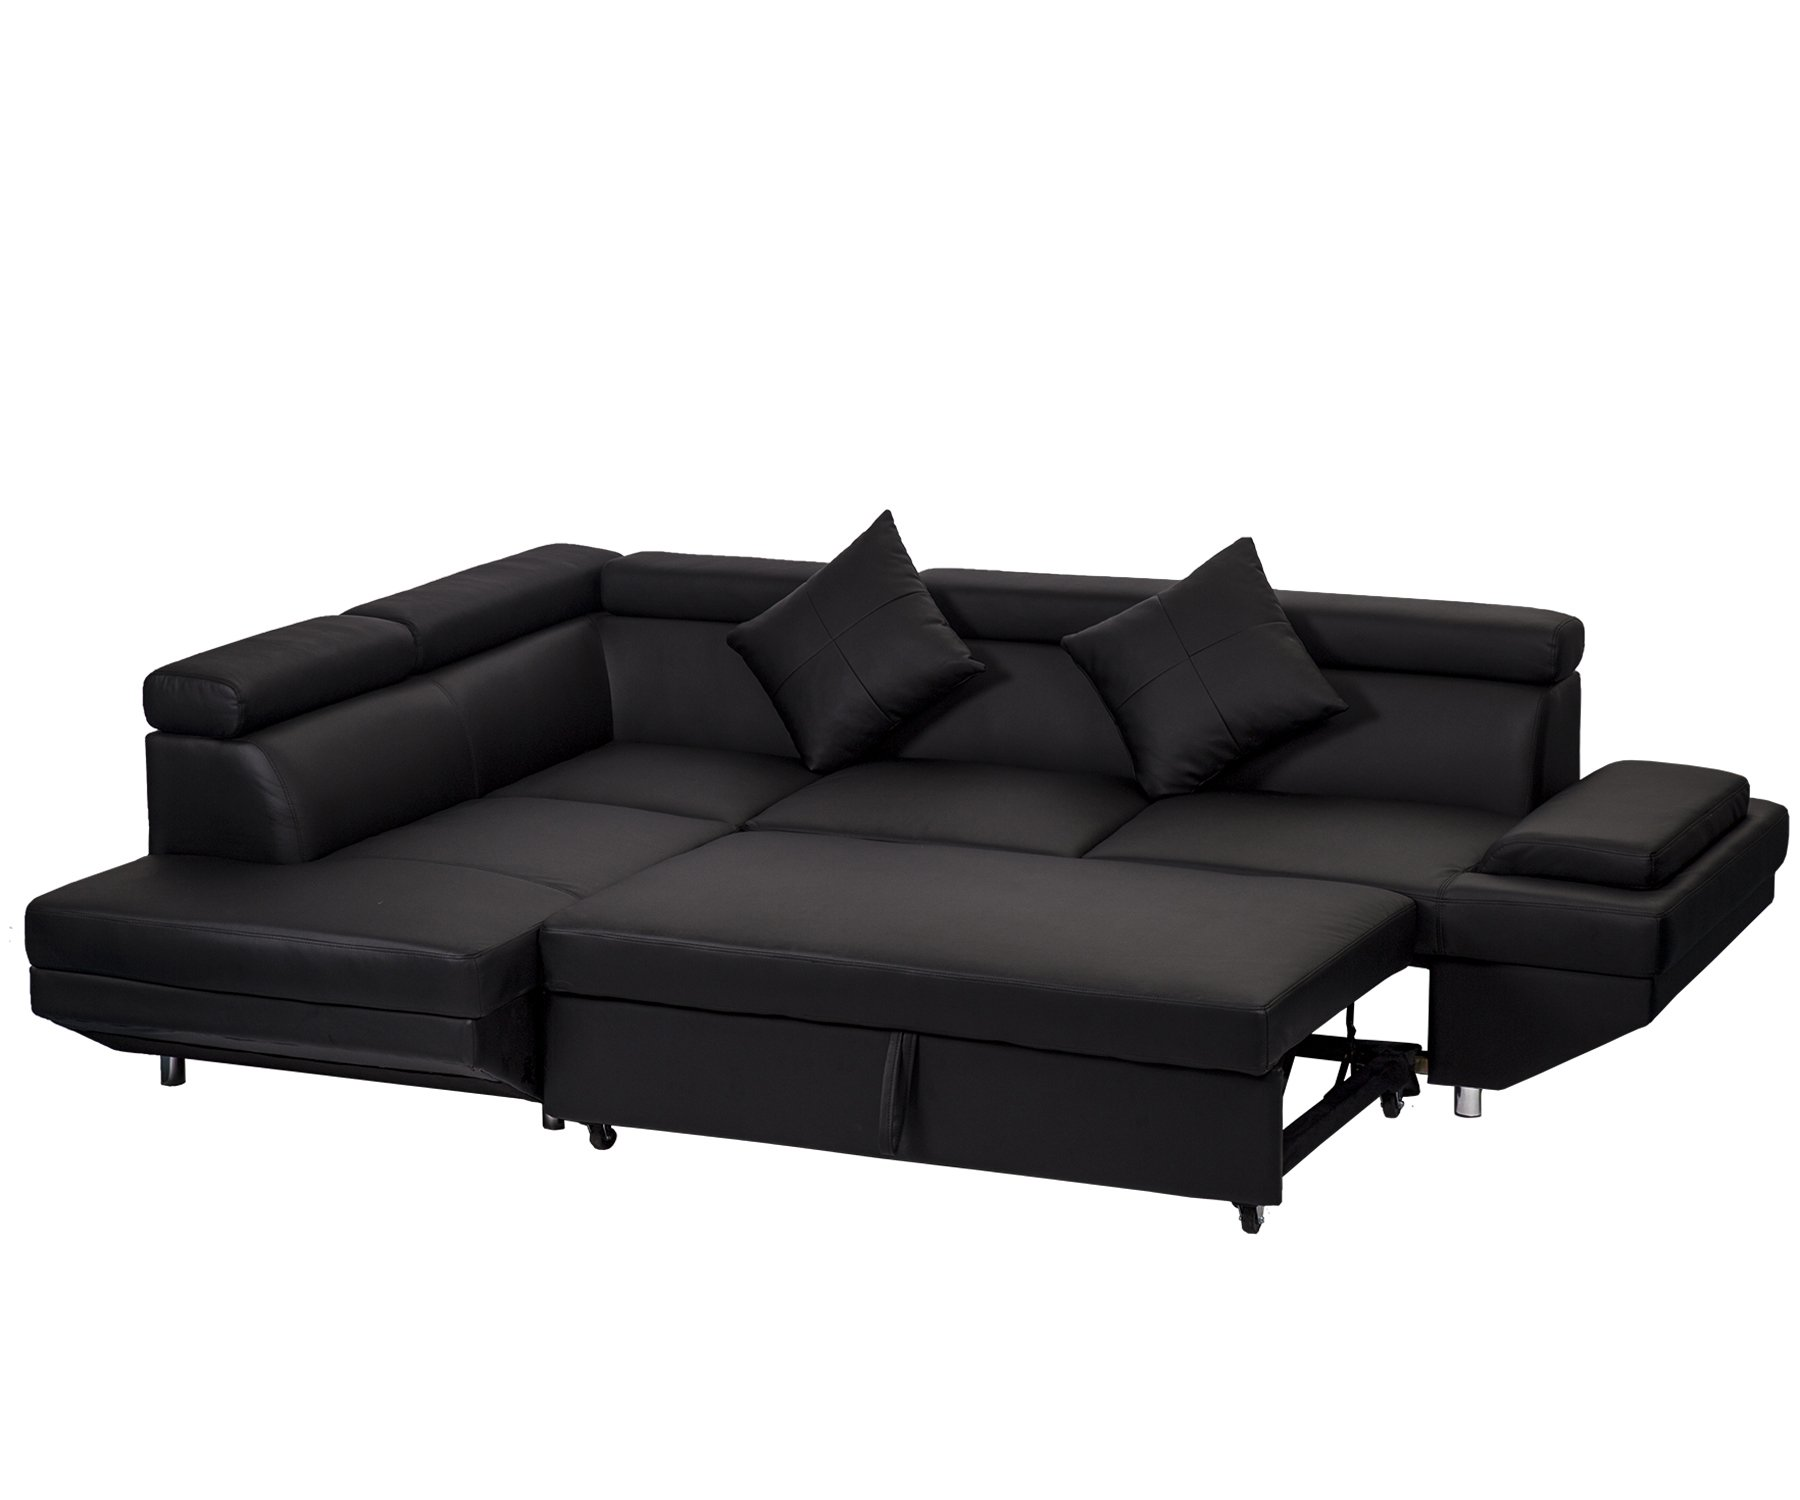 Details about 2PC Black Sleeper Sectional Futon Sofa Faux Leather Corner  Sofa Bed Living Set